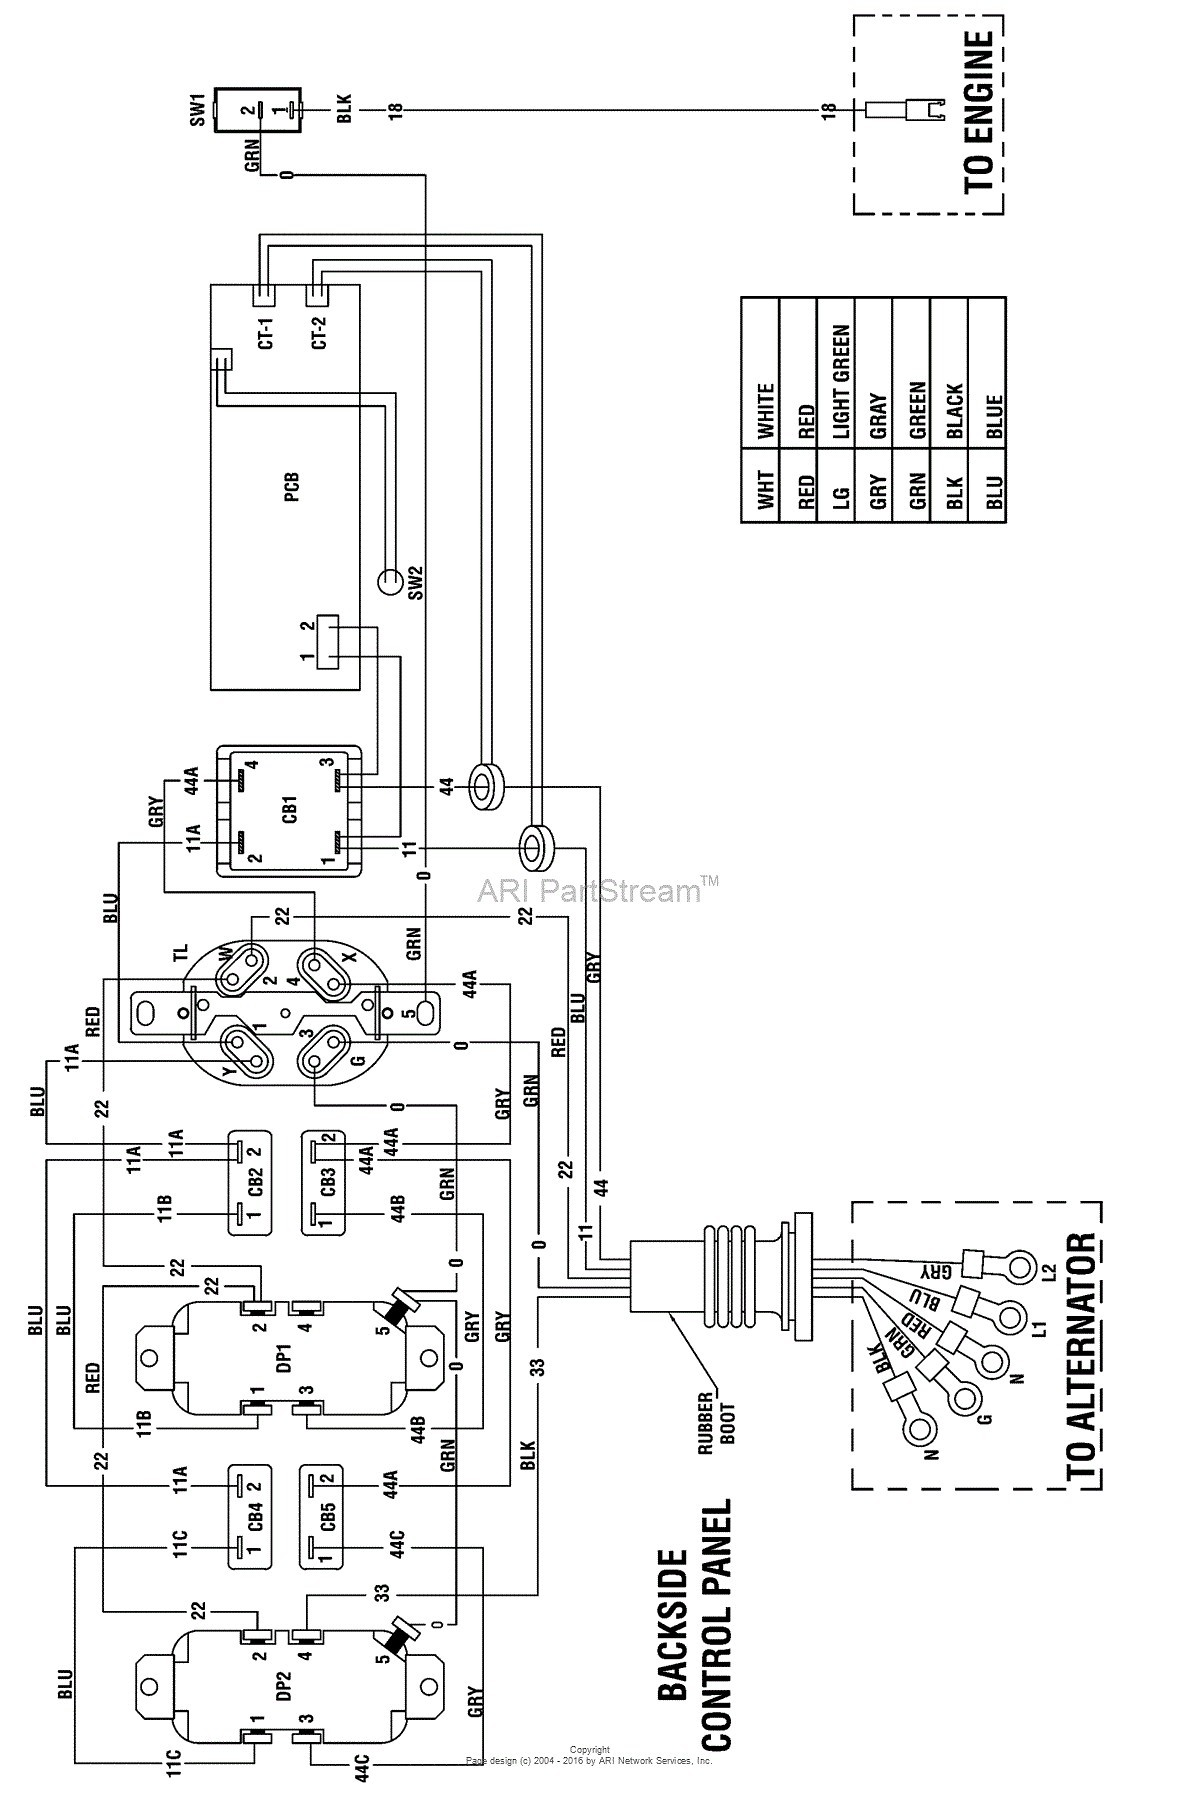 hight resolution of briggs and stratton engine diagrams briggs stratton engine diagram 2 briggs and stratton wiring diagram of